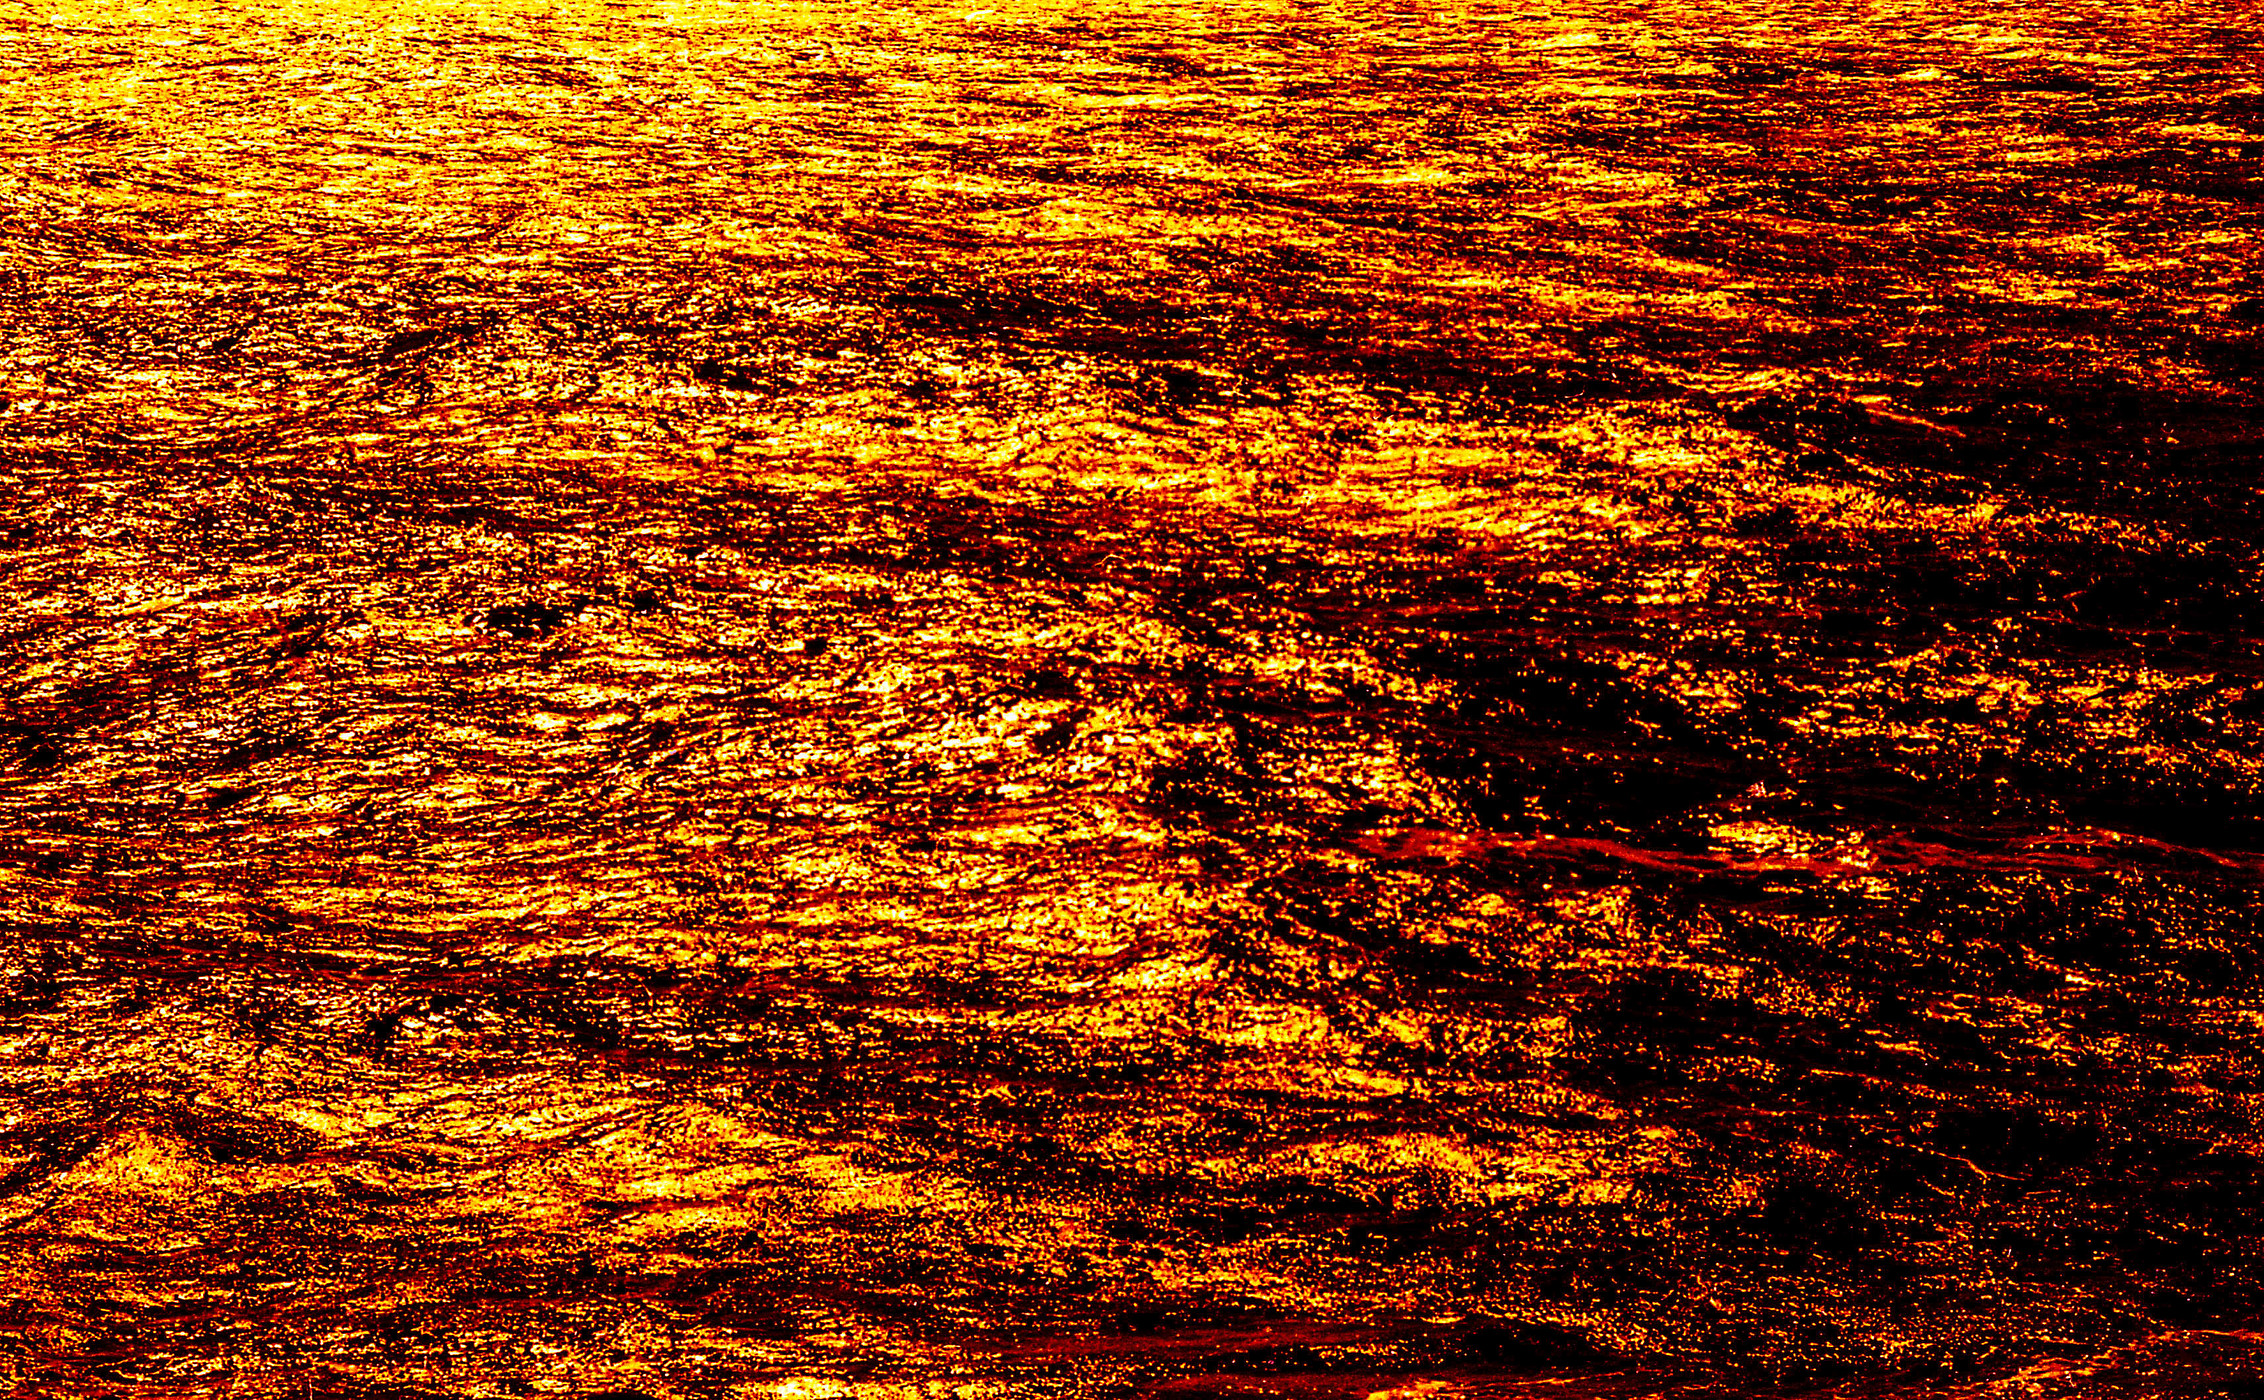 near Biskie Head Point, Gloucester MASS - redscale